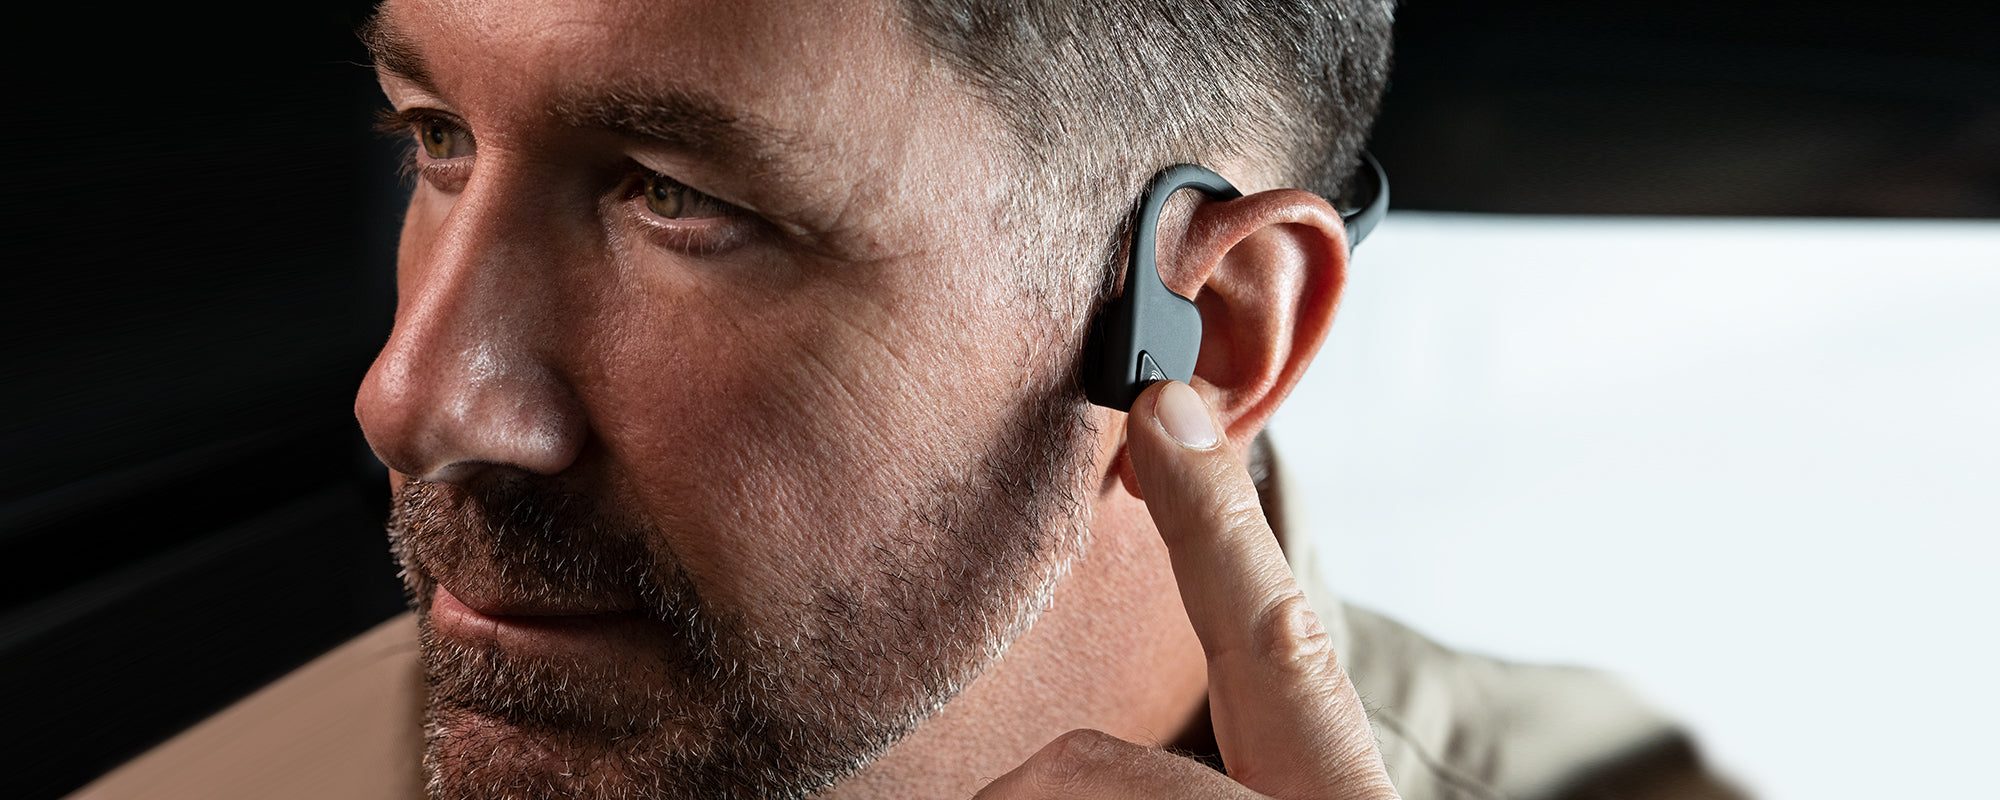 Man wearing AfterShokz Aie endurance-lifestyle wireless headphones